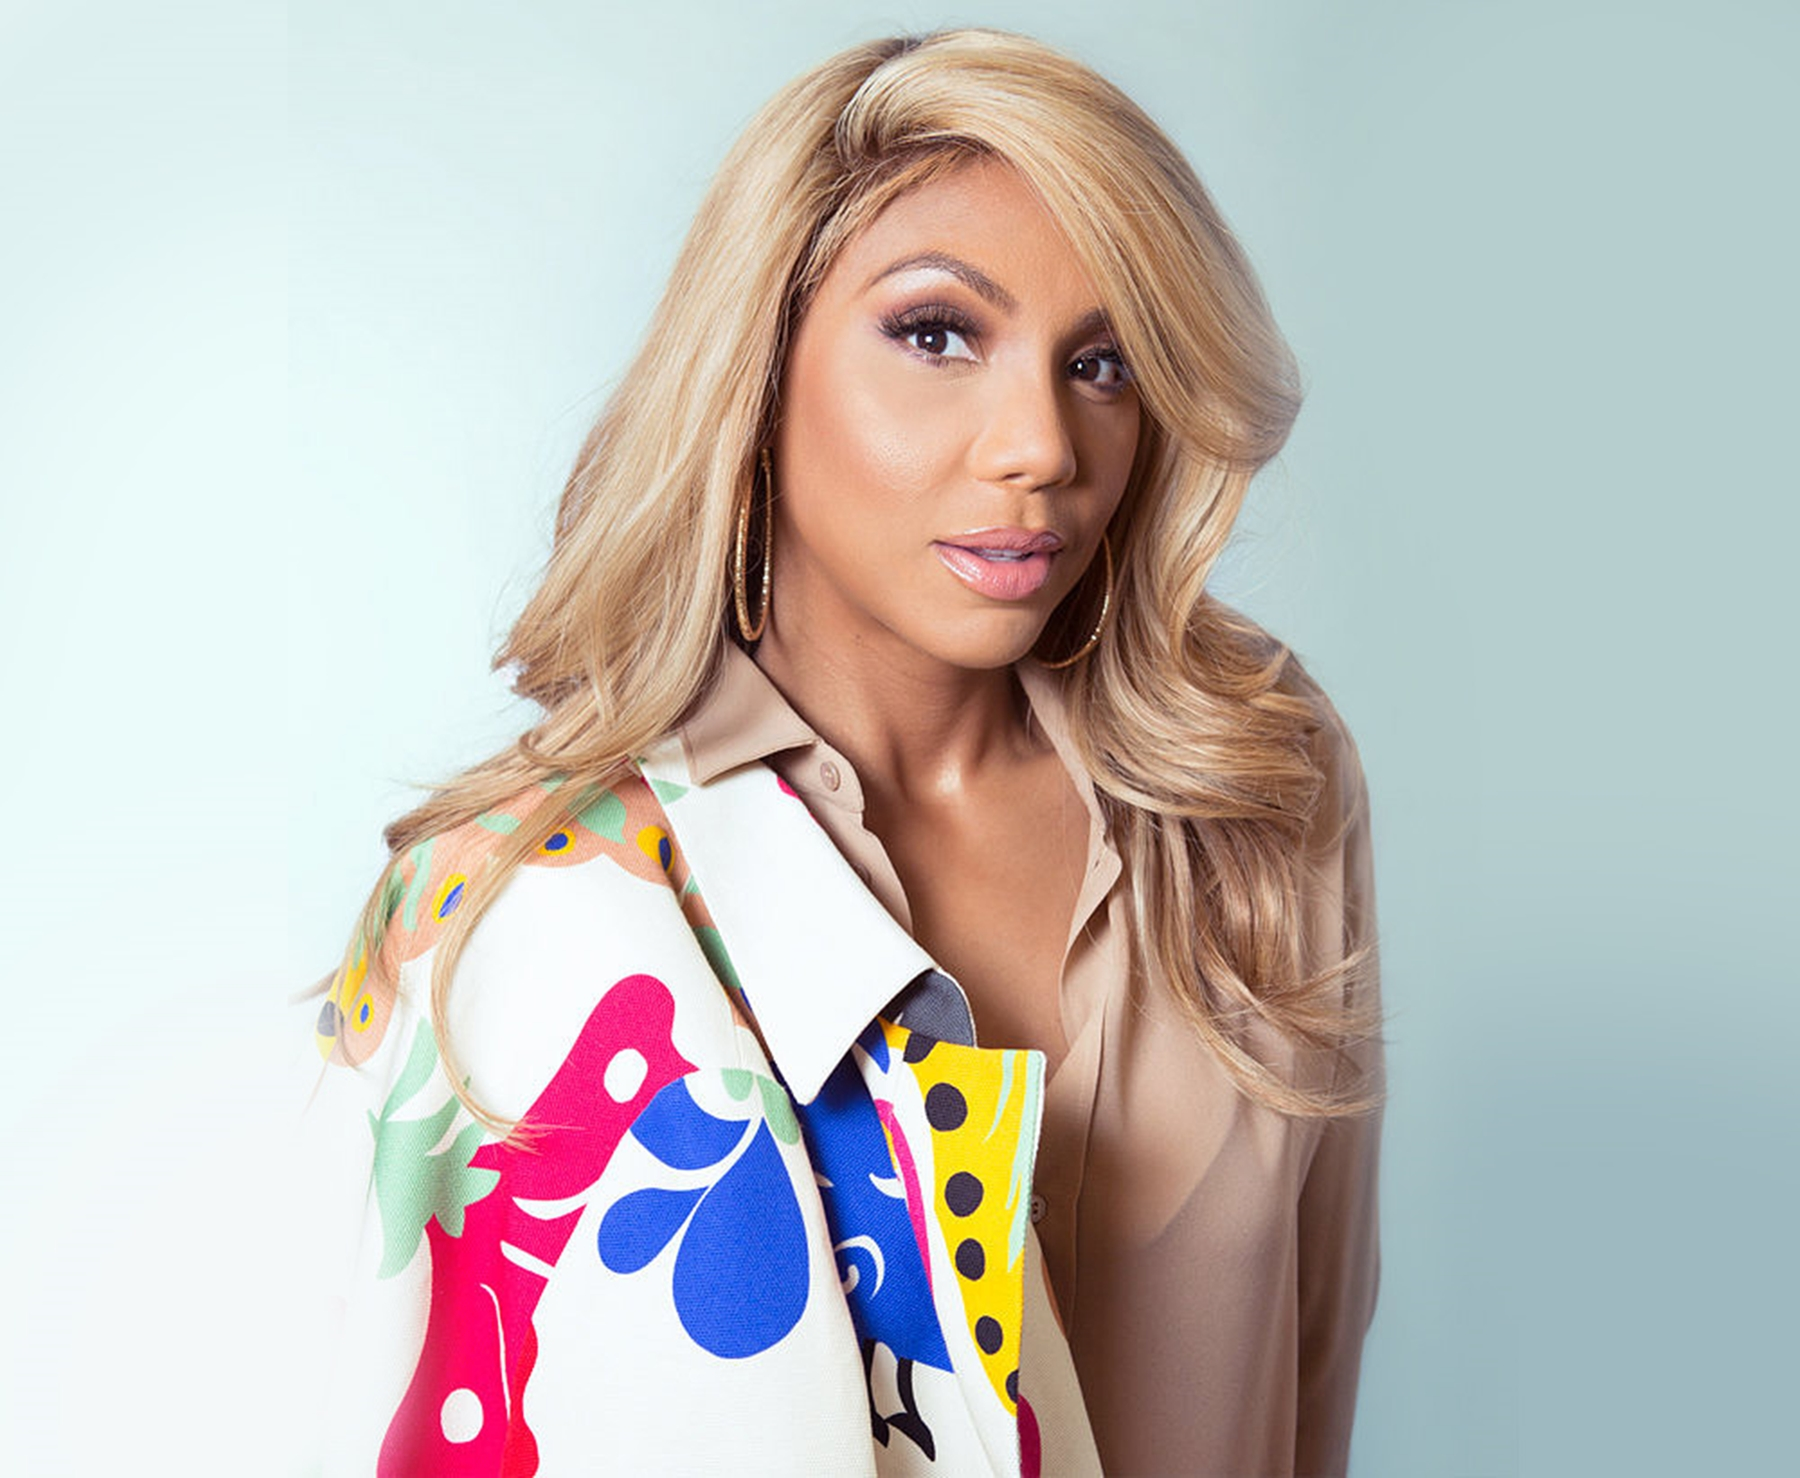 """tamar-braxtons-latest-video-has-fans-praising-her-natural-looks"""